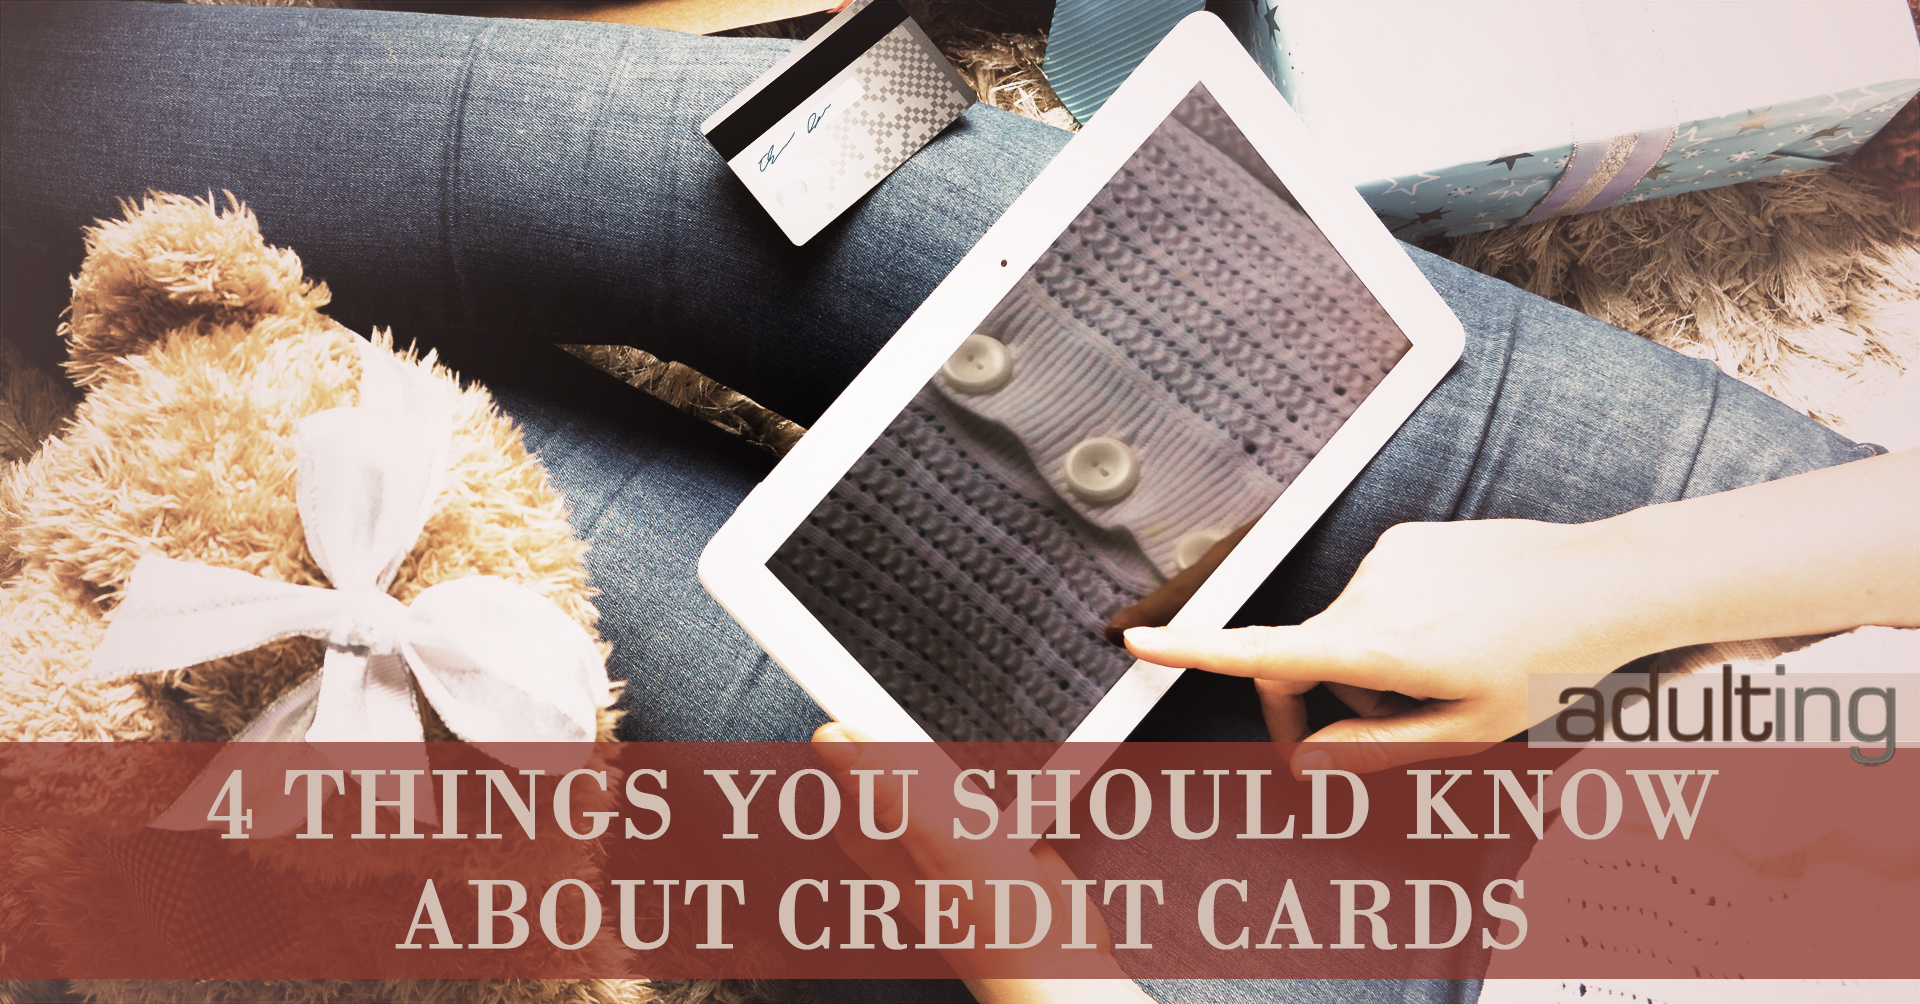 4 Things You Should Know About Credit Cards